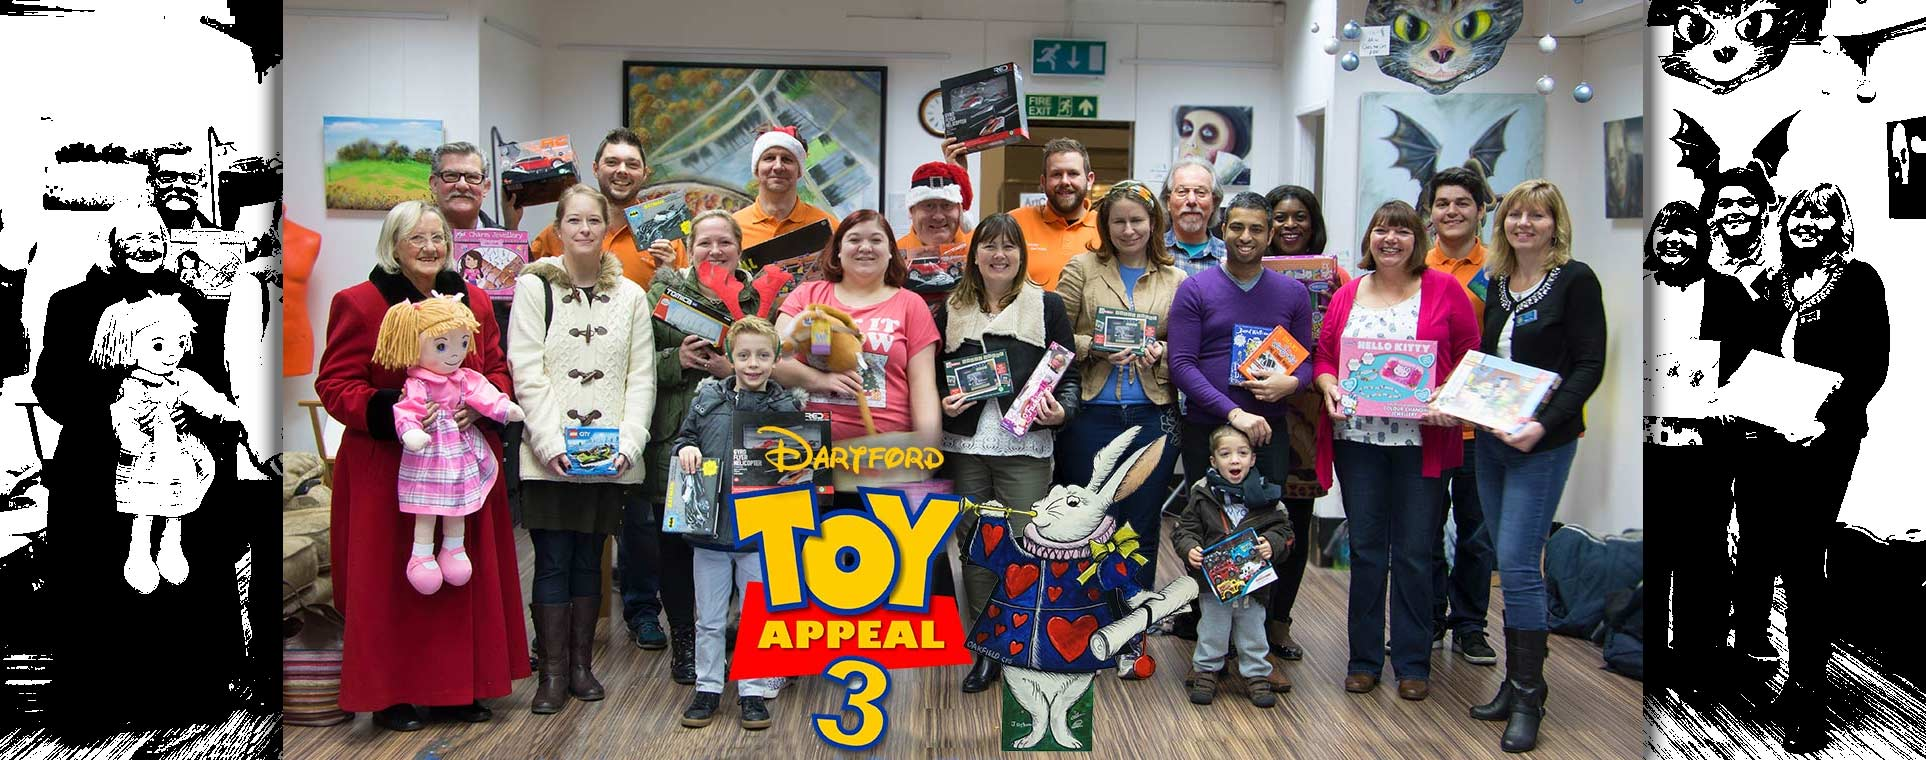 Dartford Toy Appeal 3